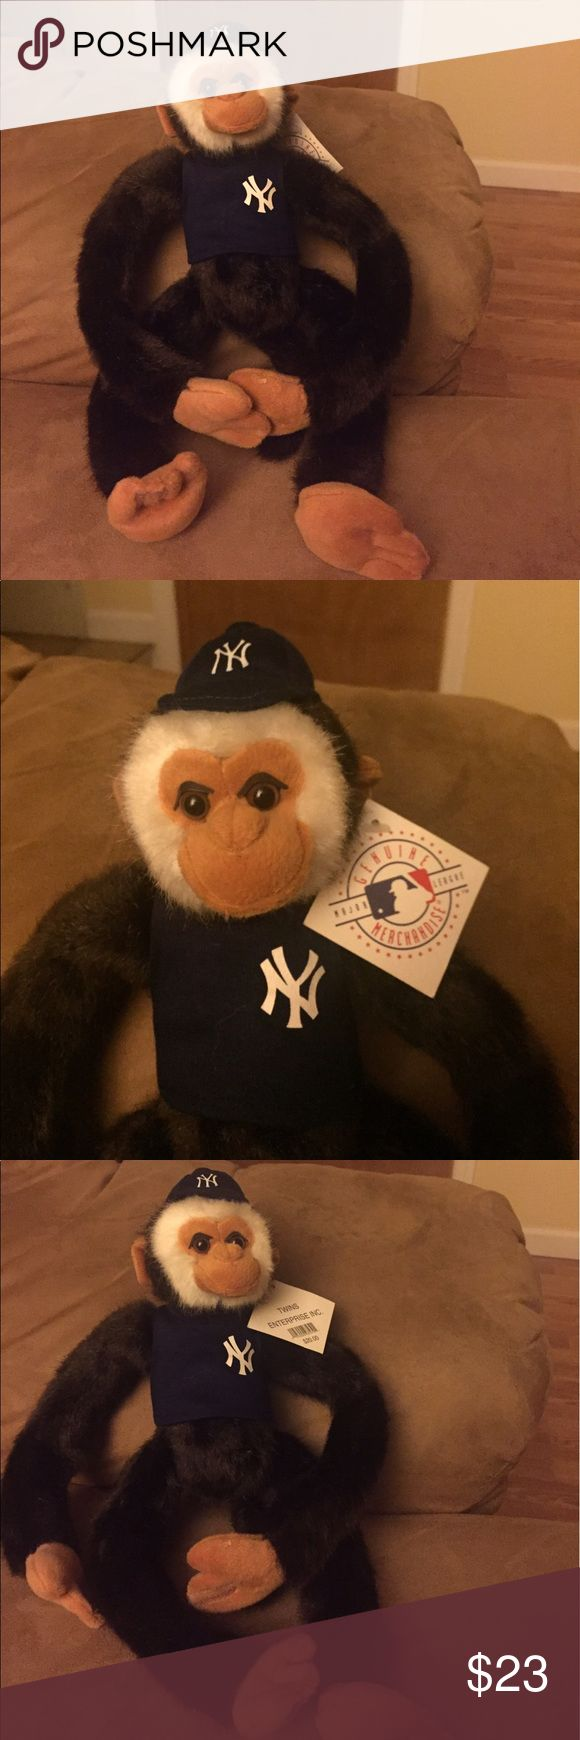 Toy Stuffed animal monkey with NY logo, brand new both for $23. Each $13 Other